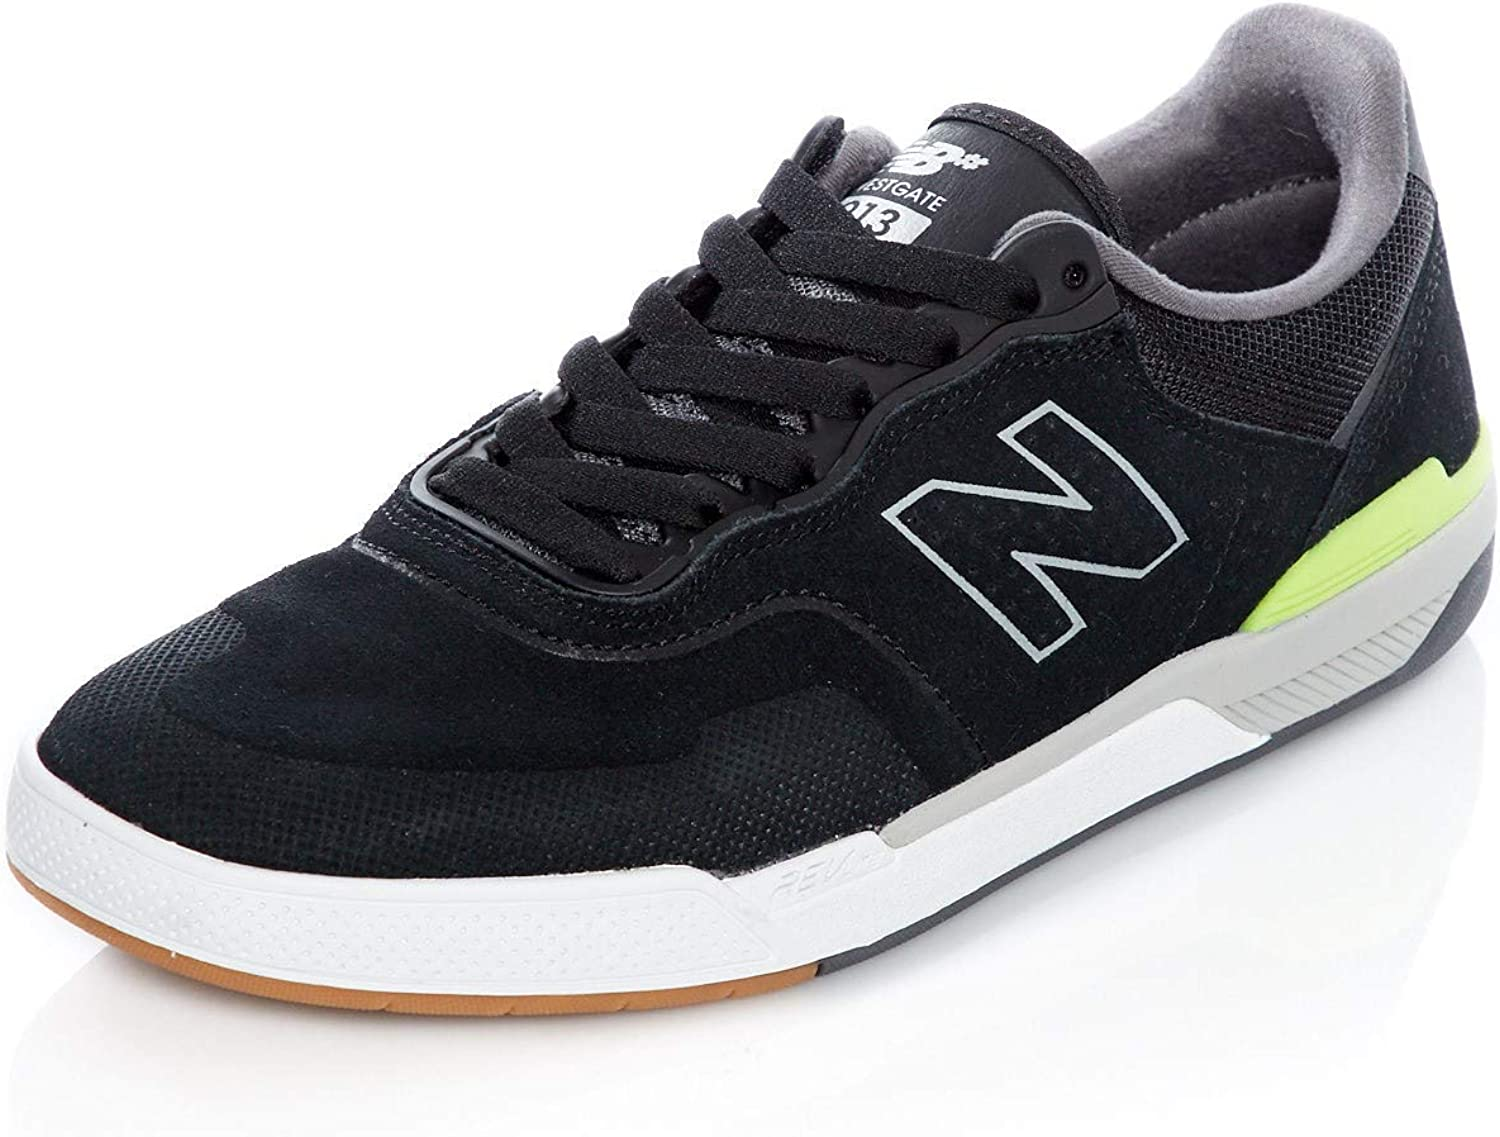 New Balance Numeric Black-Hi Lite 913 shoes